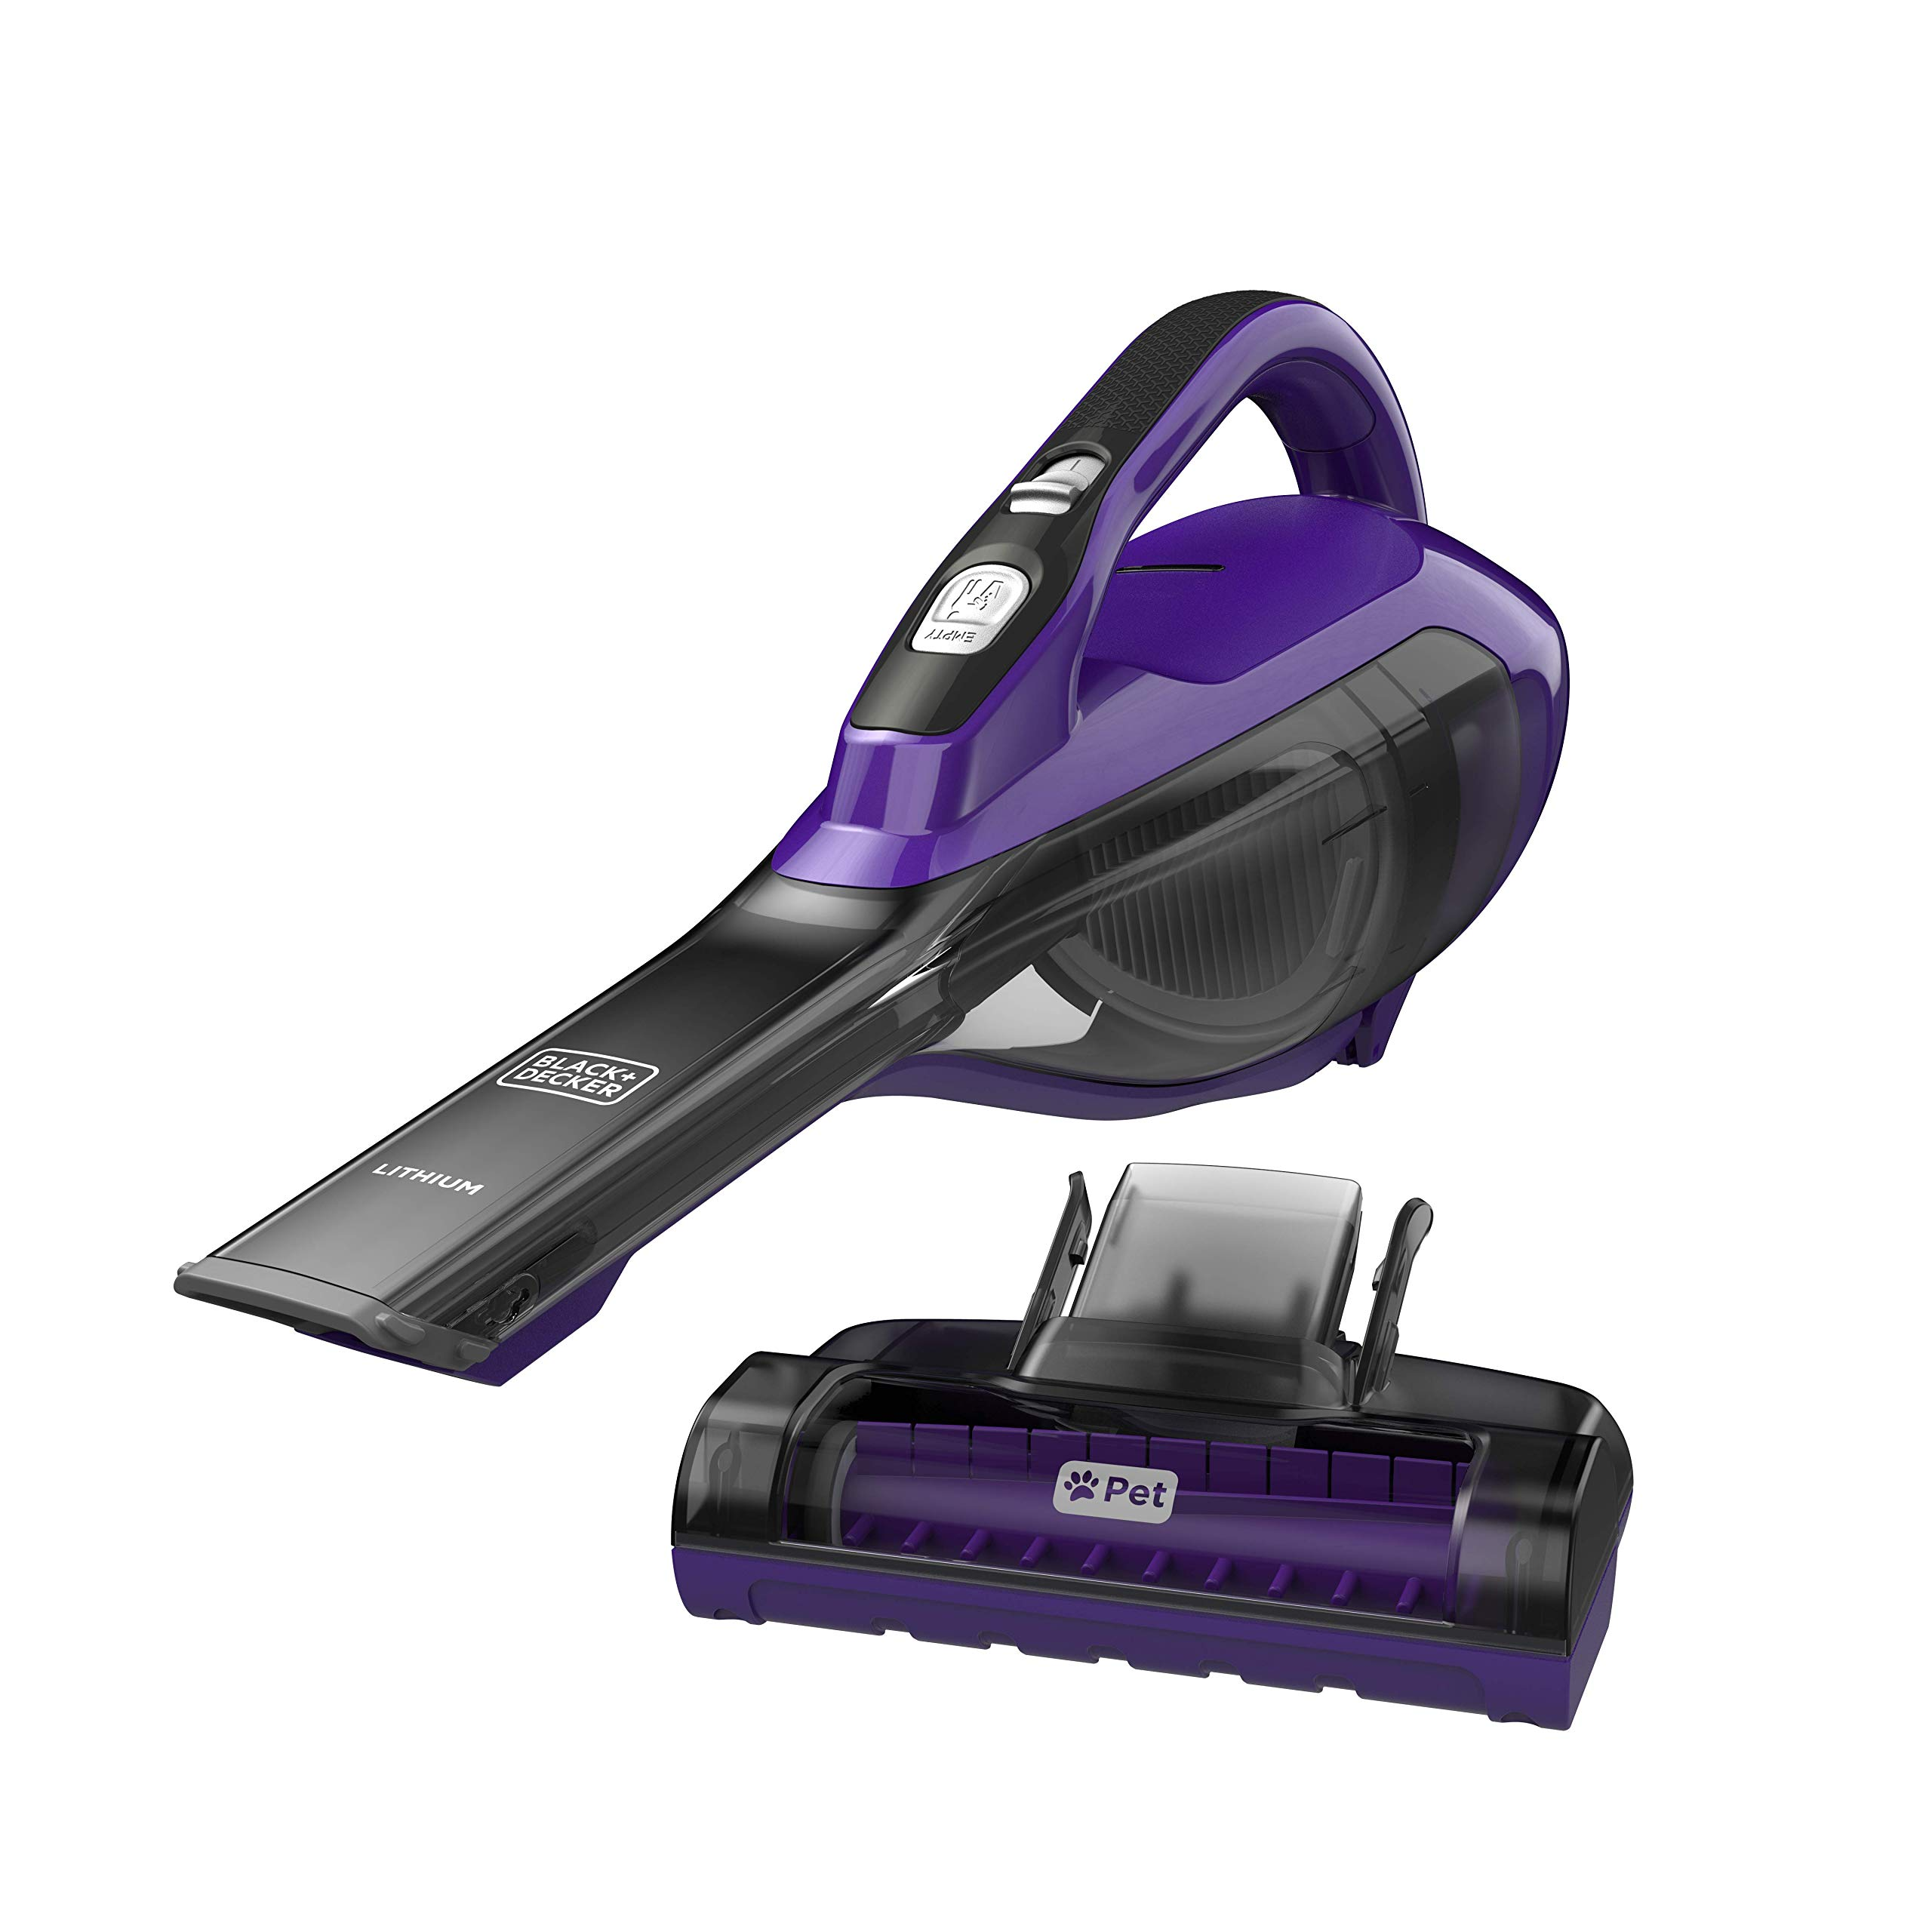 BLACK+DECKER HLVA325JP07 Lithium Pet Hand Vacuum, Purple, Pet Purple